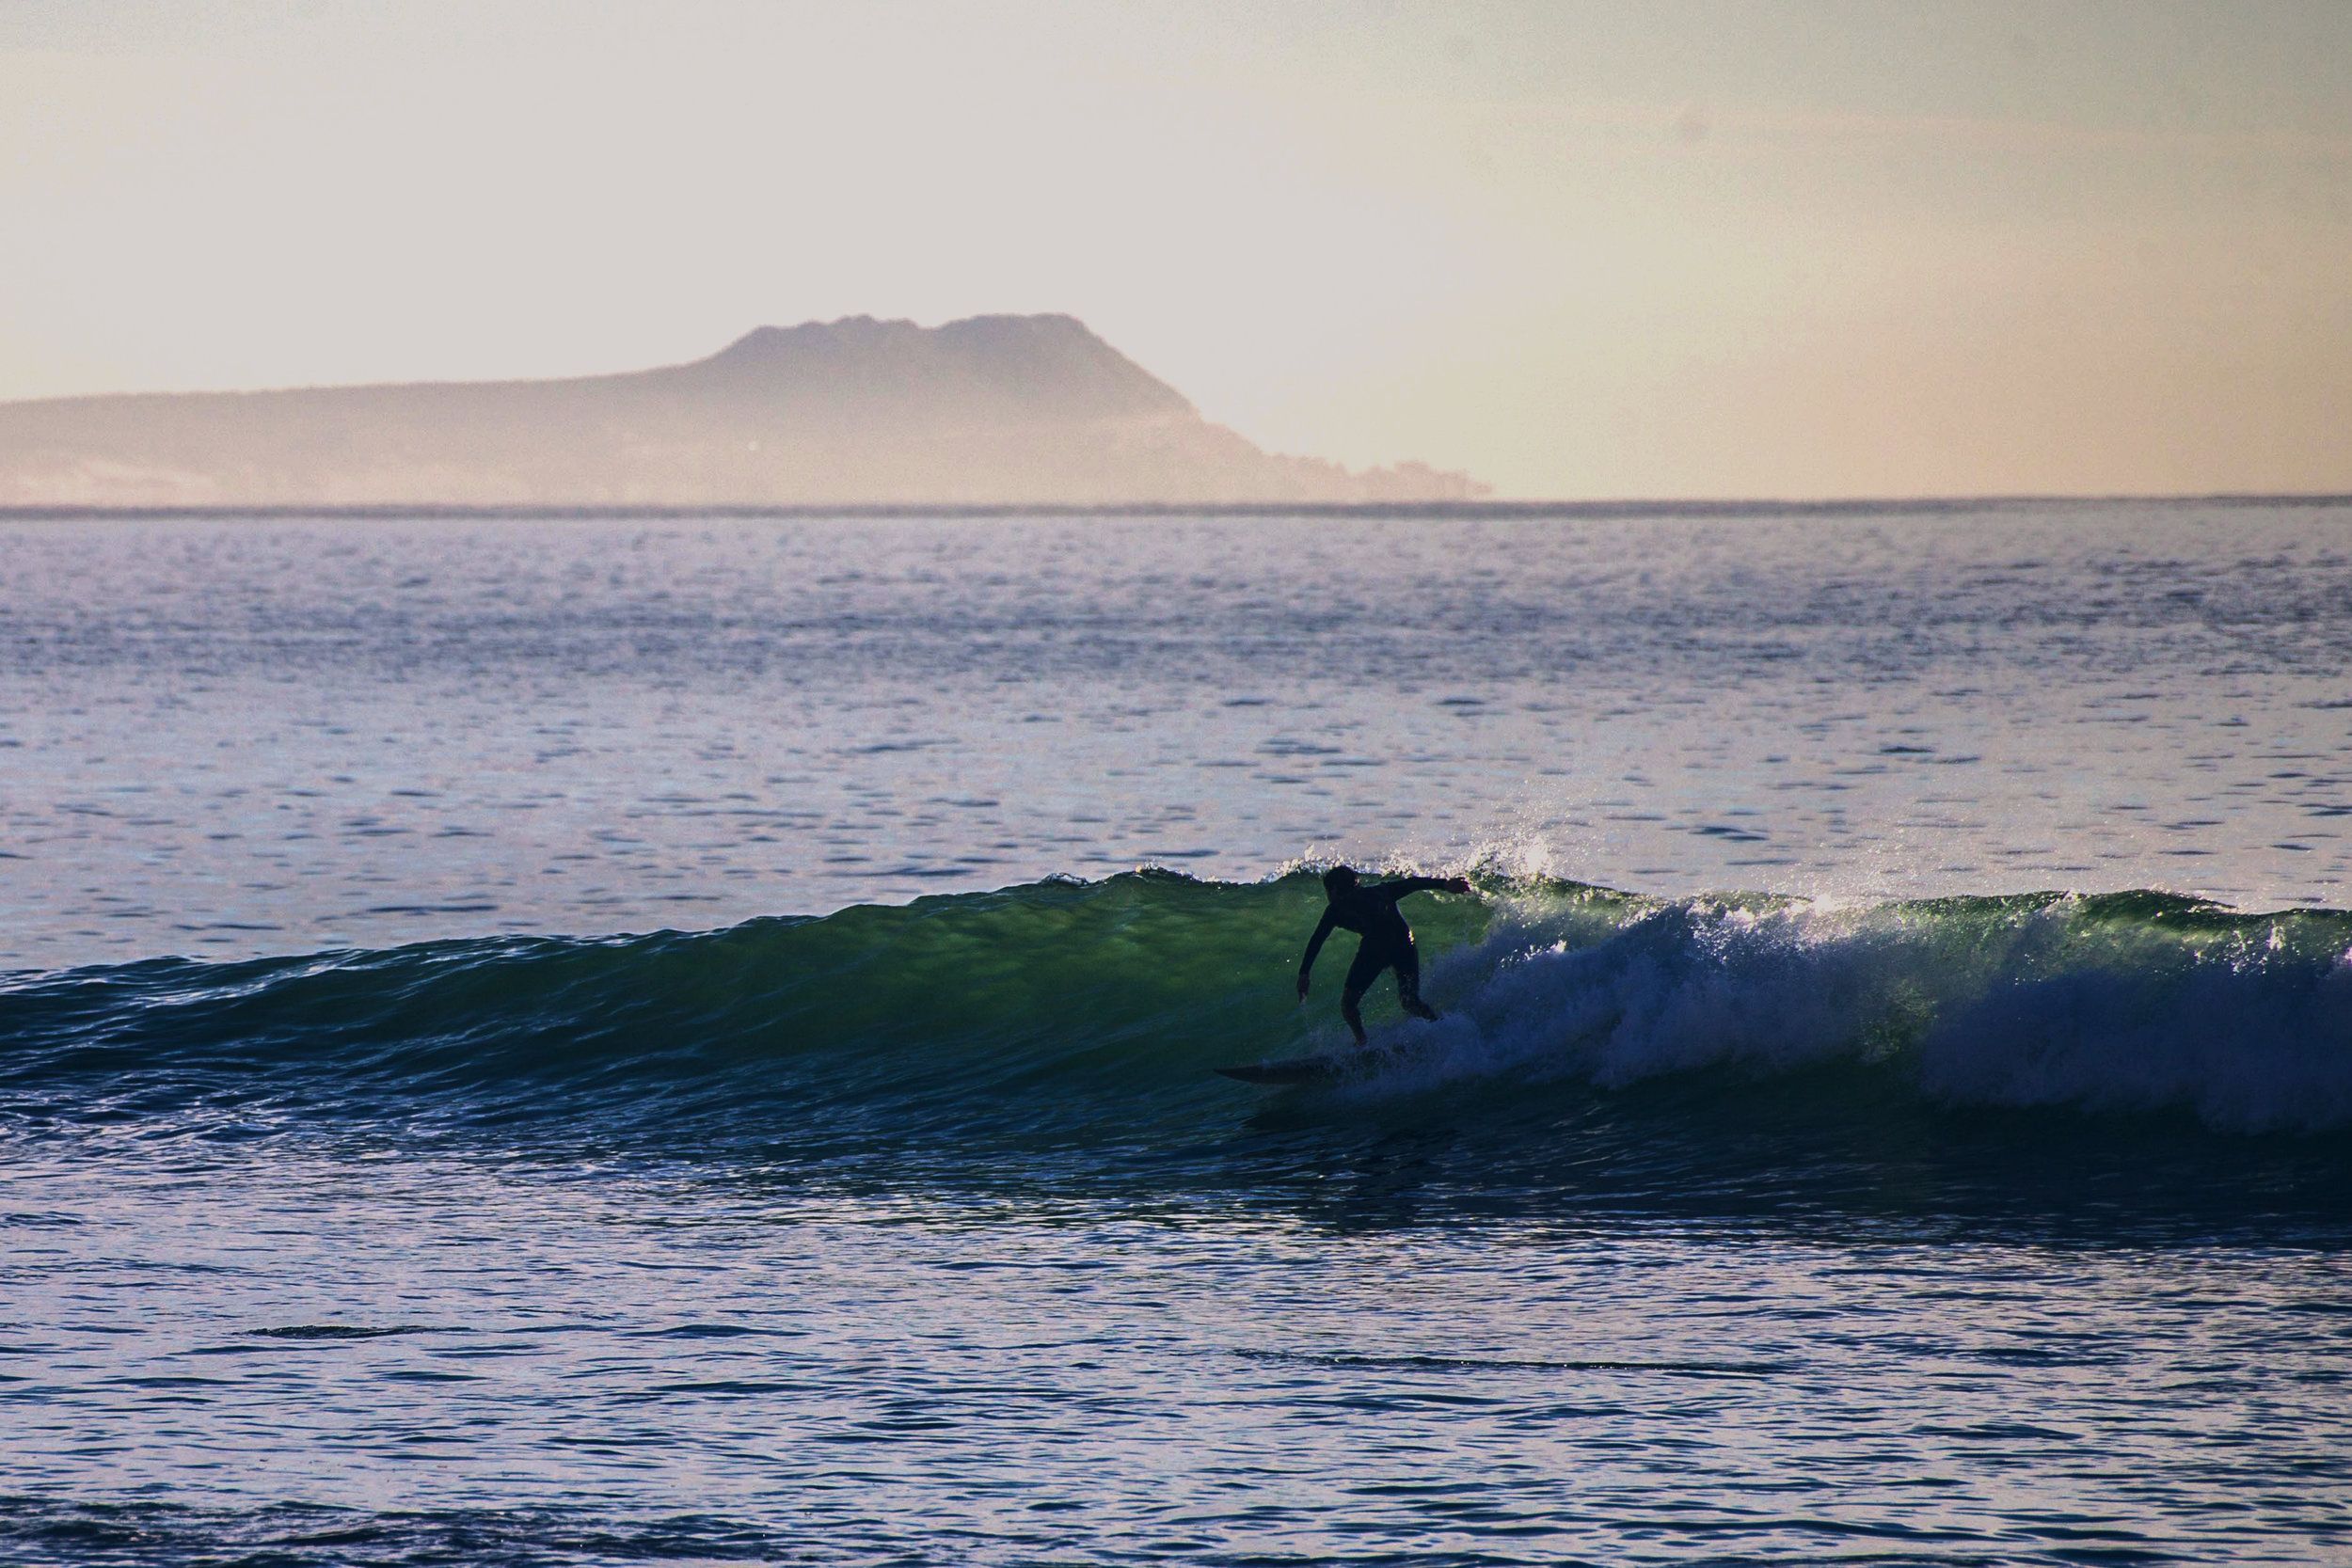 BAJA SUR - IMPULSIVELY PURCHASING FLIGHT TICKETS, AND LEARNING LESSONS.